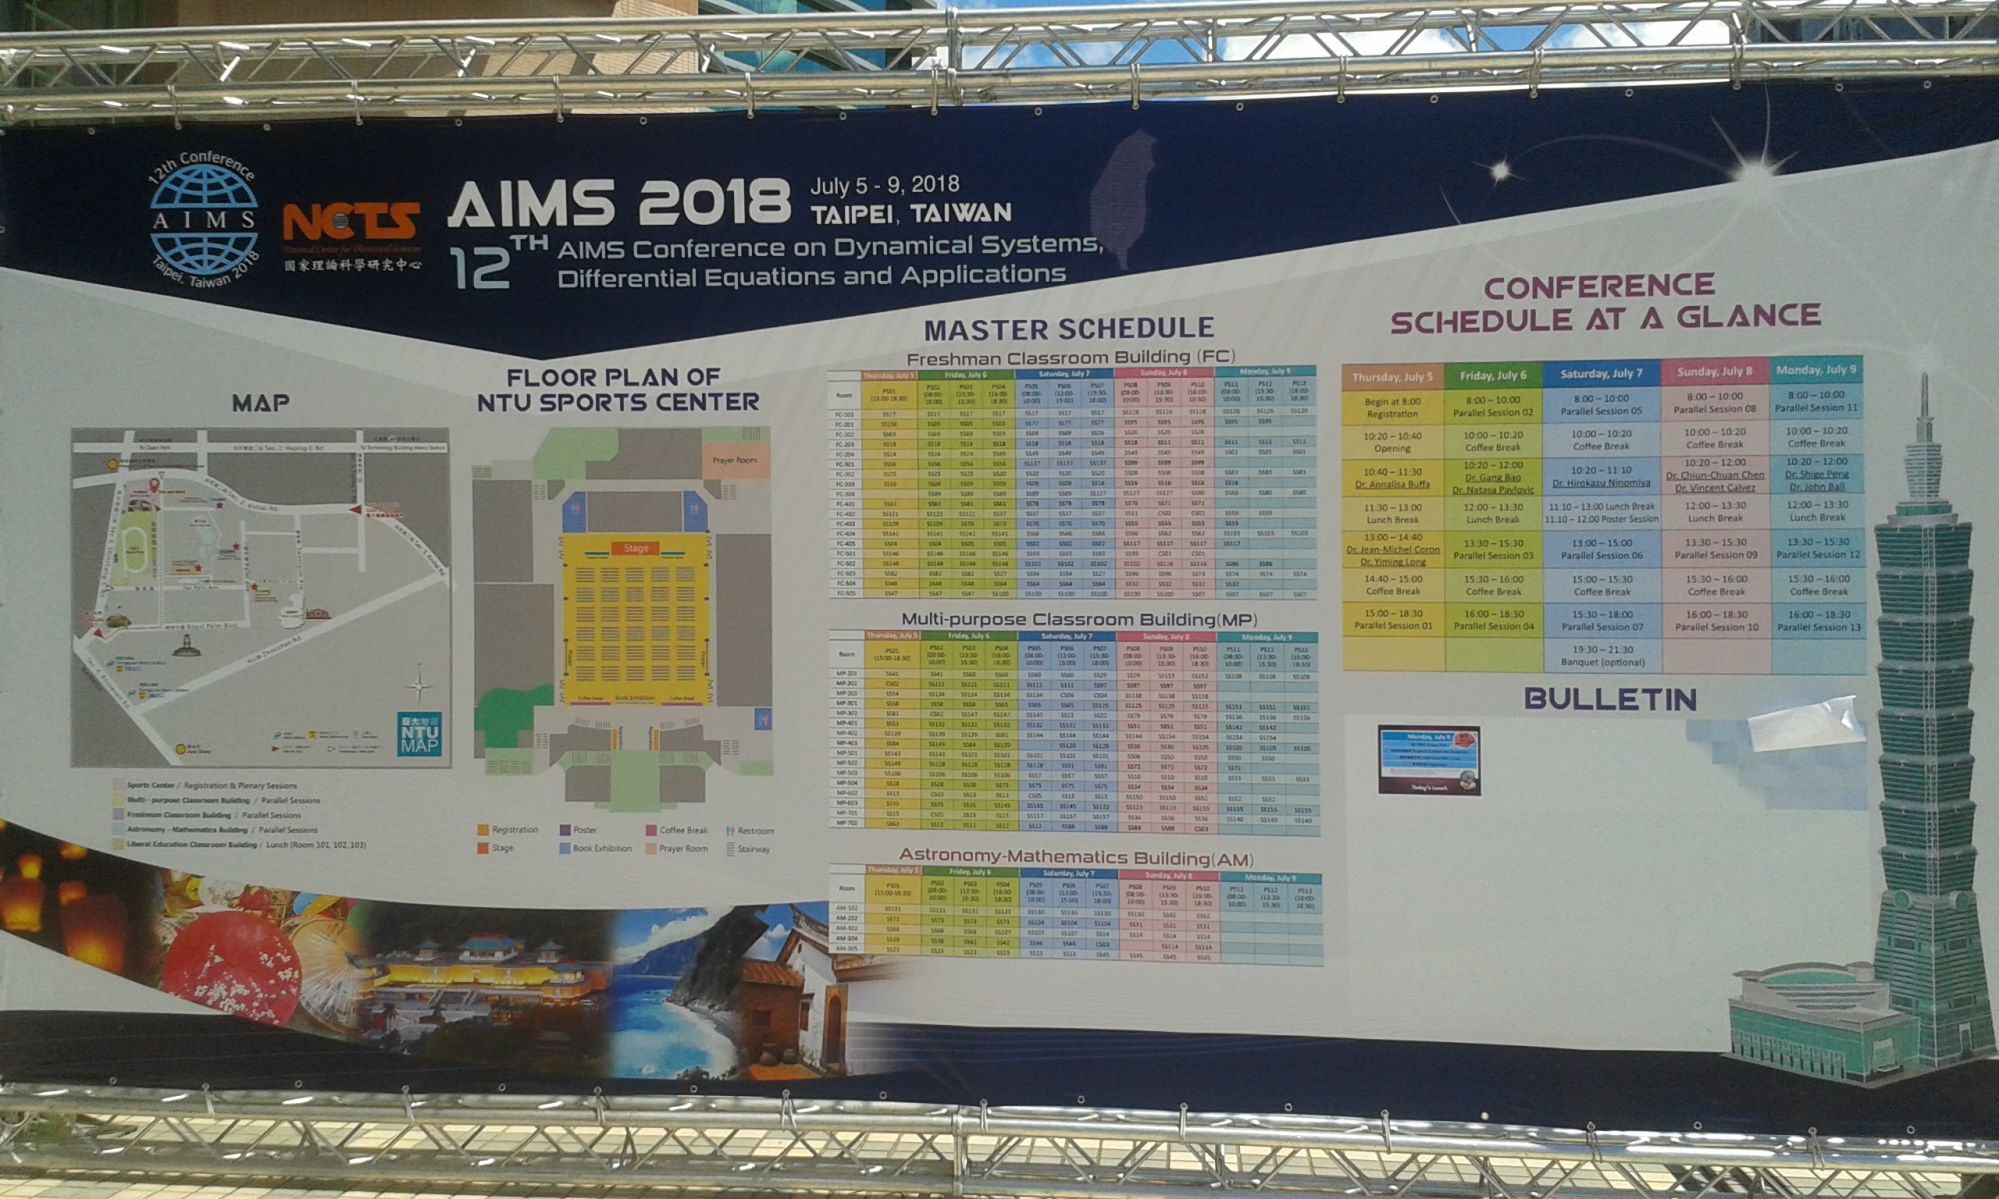 AIMS Conference schedule at a glance